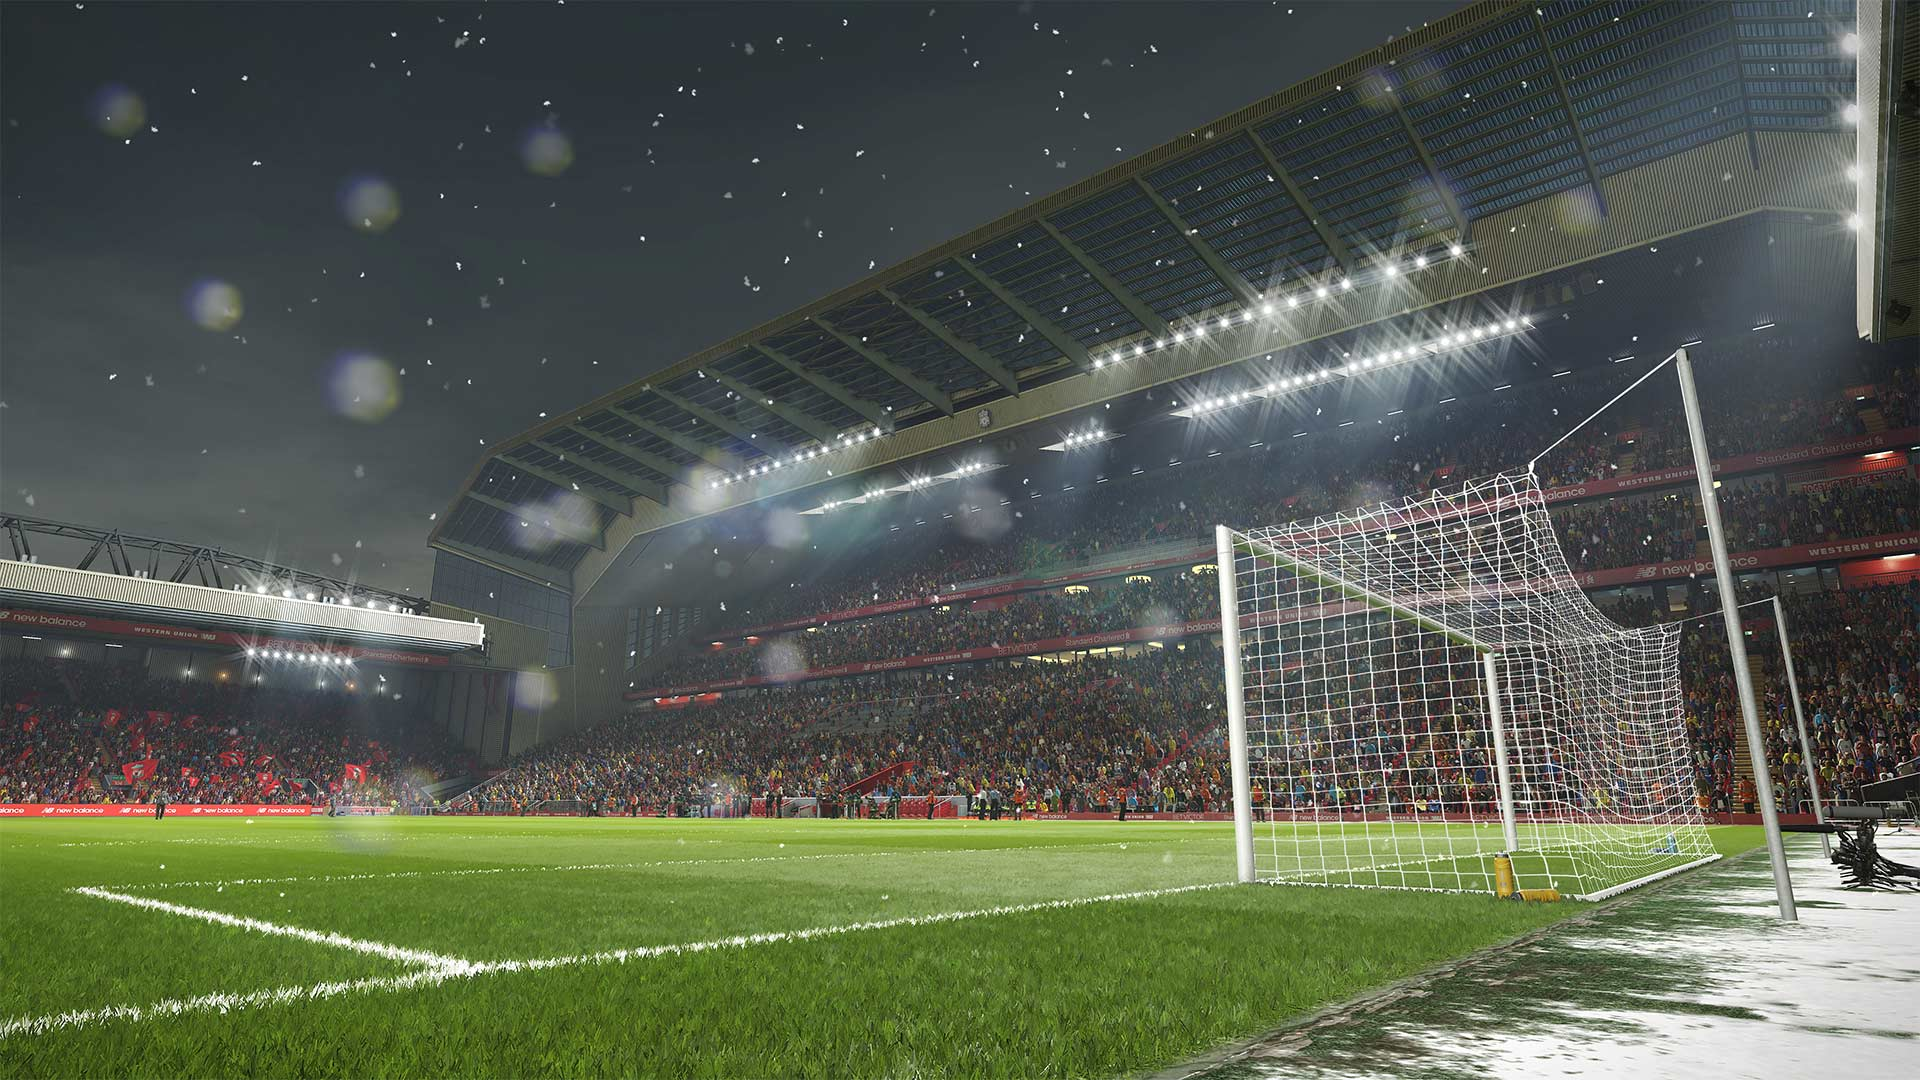 PRO EVOLUTION SOCCER 2019 LITE on Steam